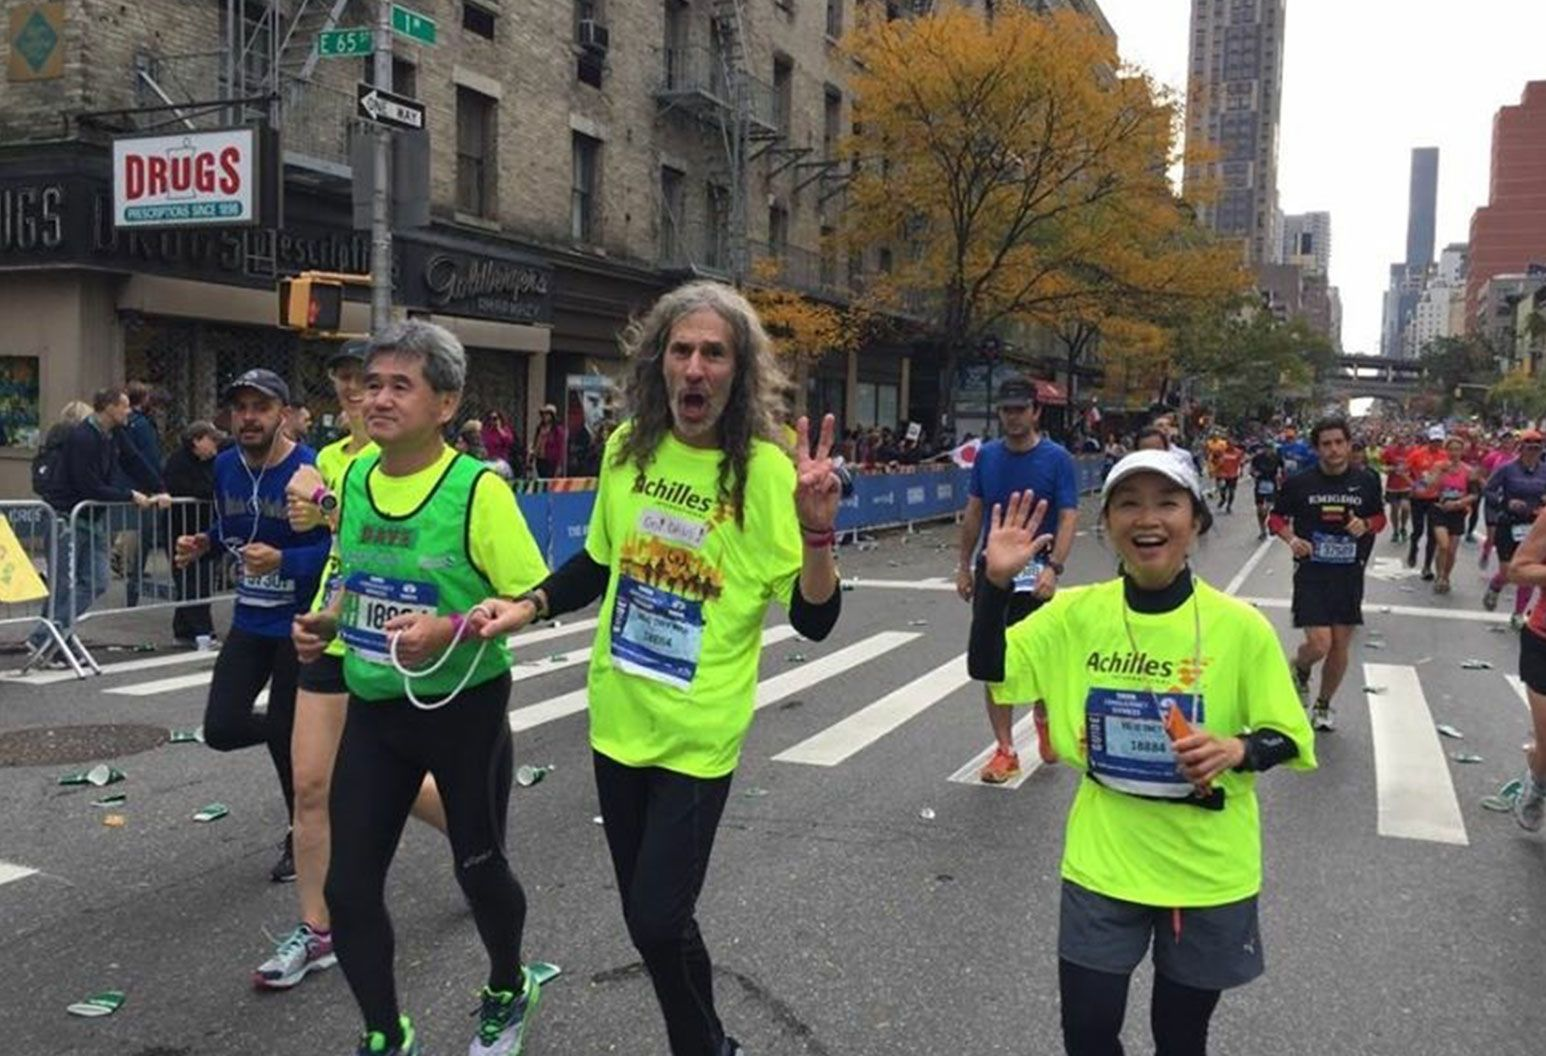 A trio of people running in the street during a marathon pose for the camera. They are all wearing neon green shirts. The man on the far left has grey hair and looks straight ahead, the man in the middle with long hair raises a peace sign, and the woman on the right waves at the camera.